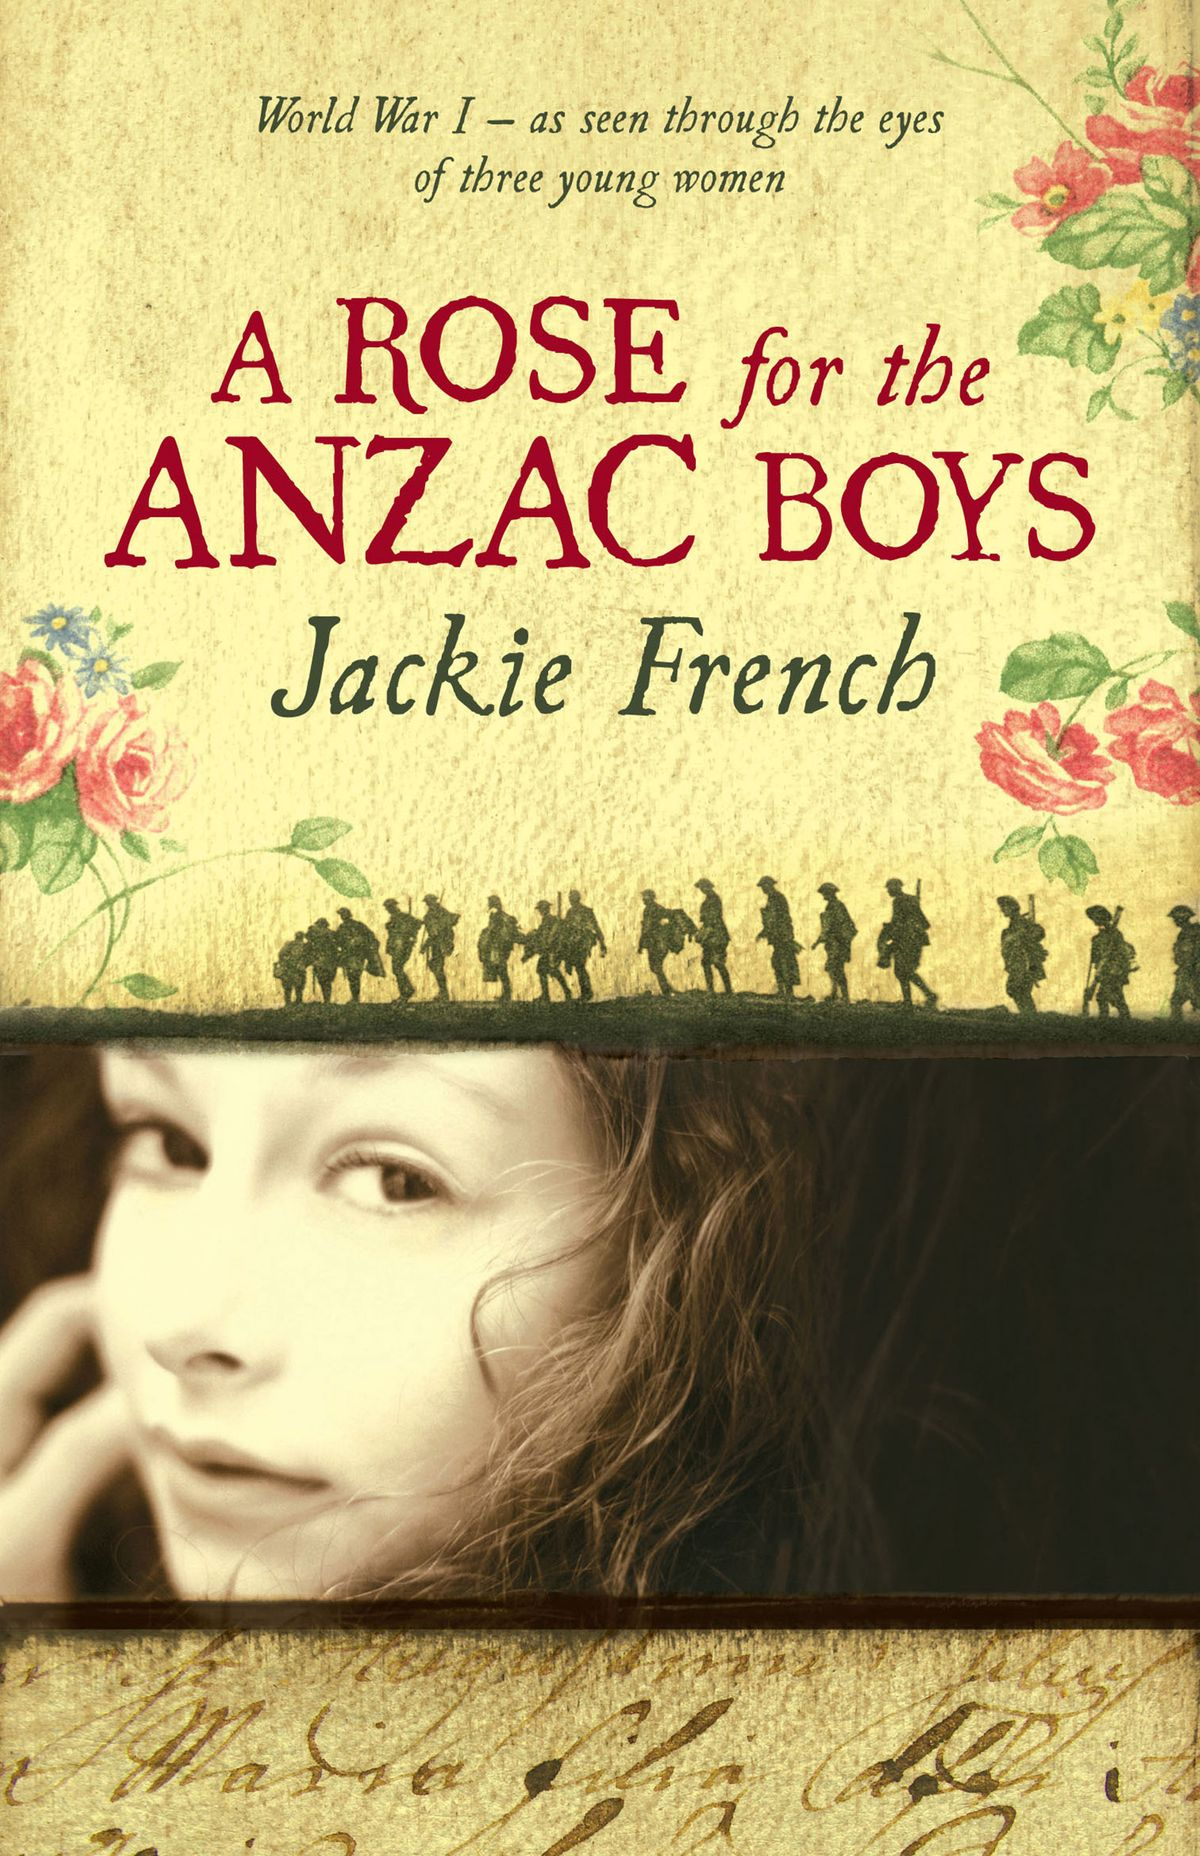 essay rose anzac boys A rose for the anzac boys a rose for the anzac boys by the australian author, jackie french, is set in 1915 during world war one it tells the story of the 'the war to end all wars' through the eyes of three young women.